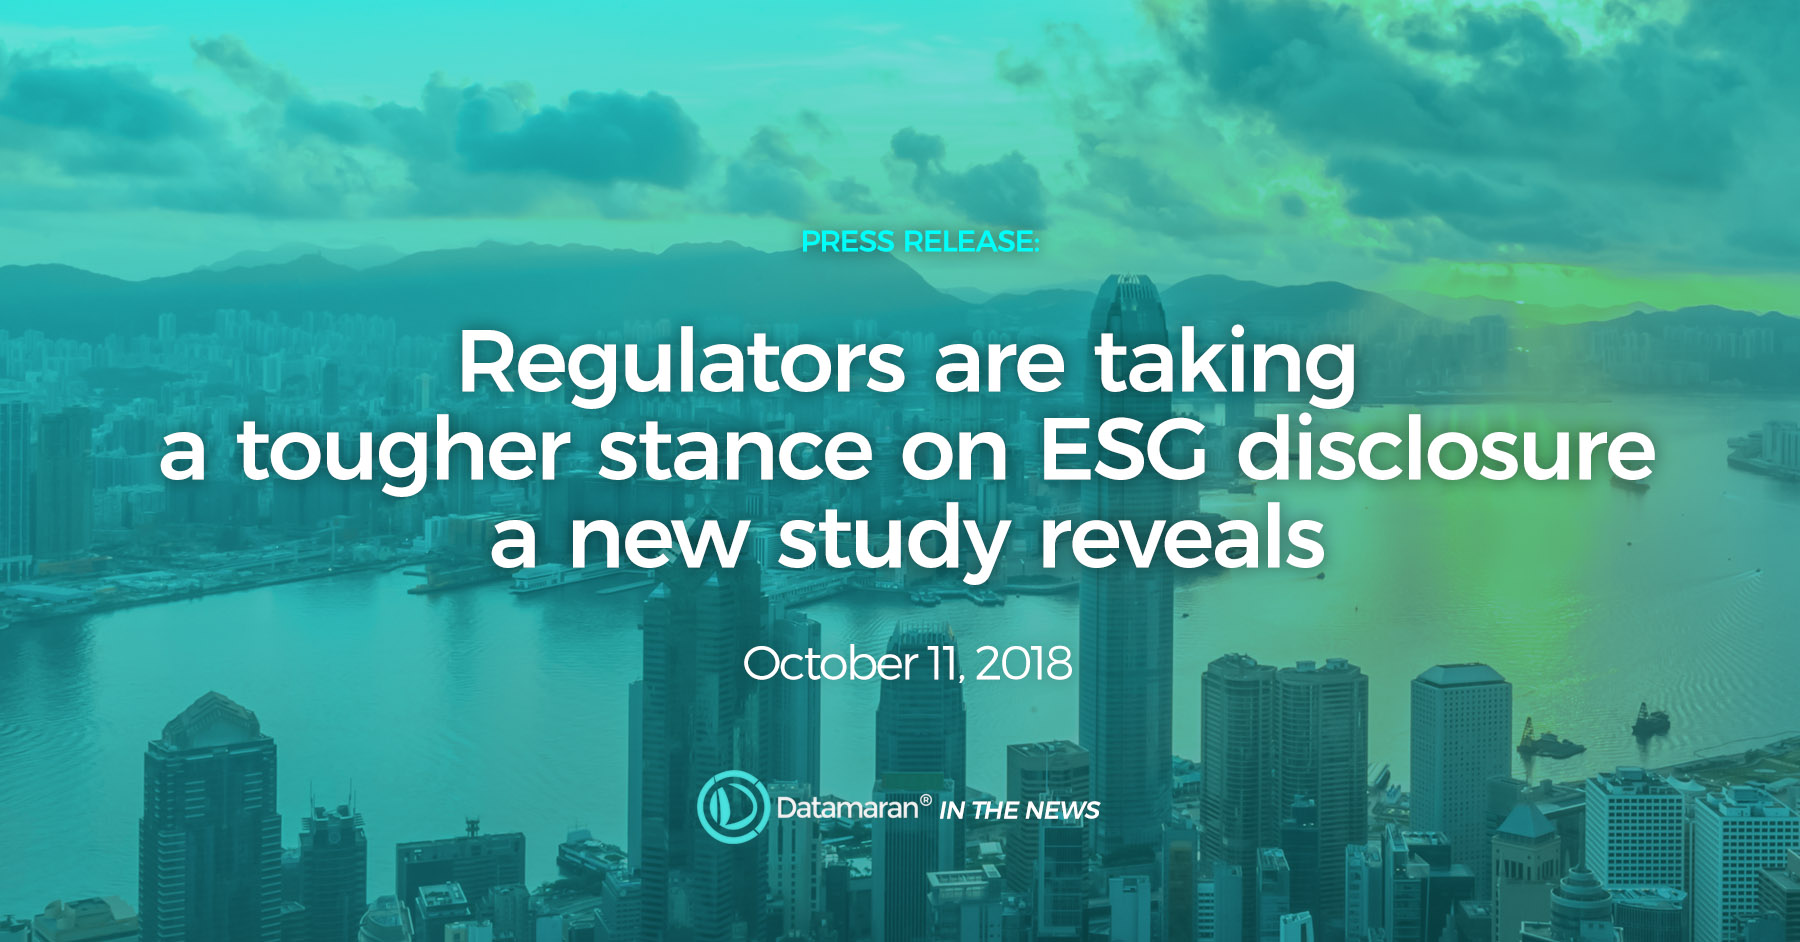 Datamaran Global Insights Report: Regulators are taking a tougher stance on ESG disclosure